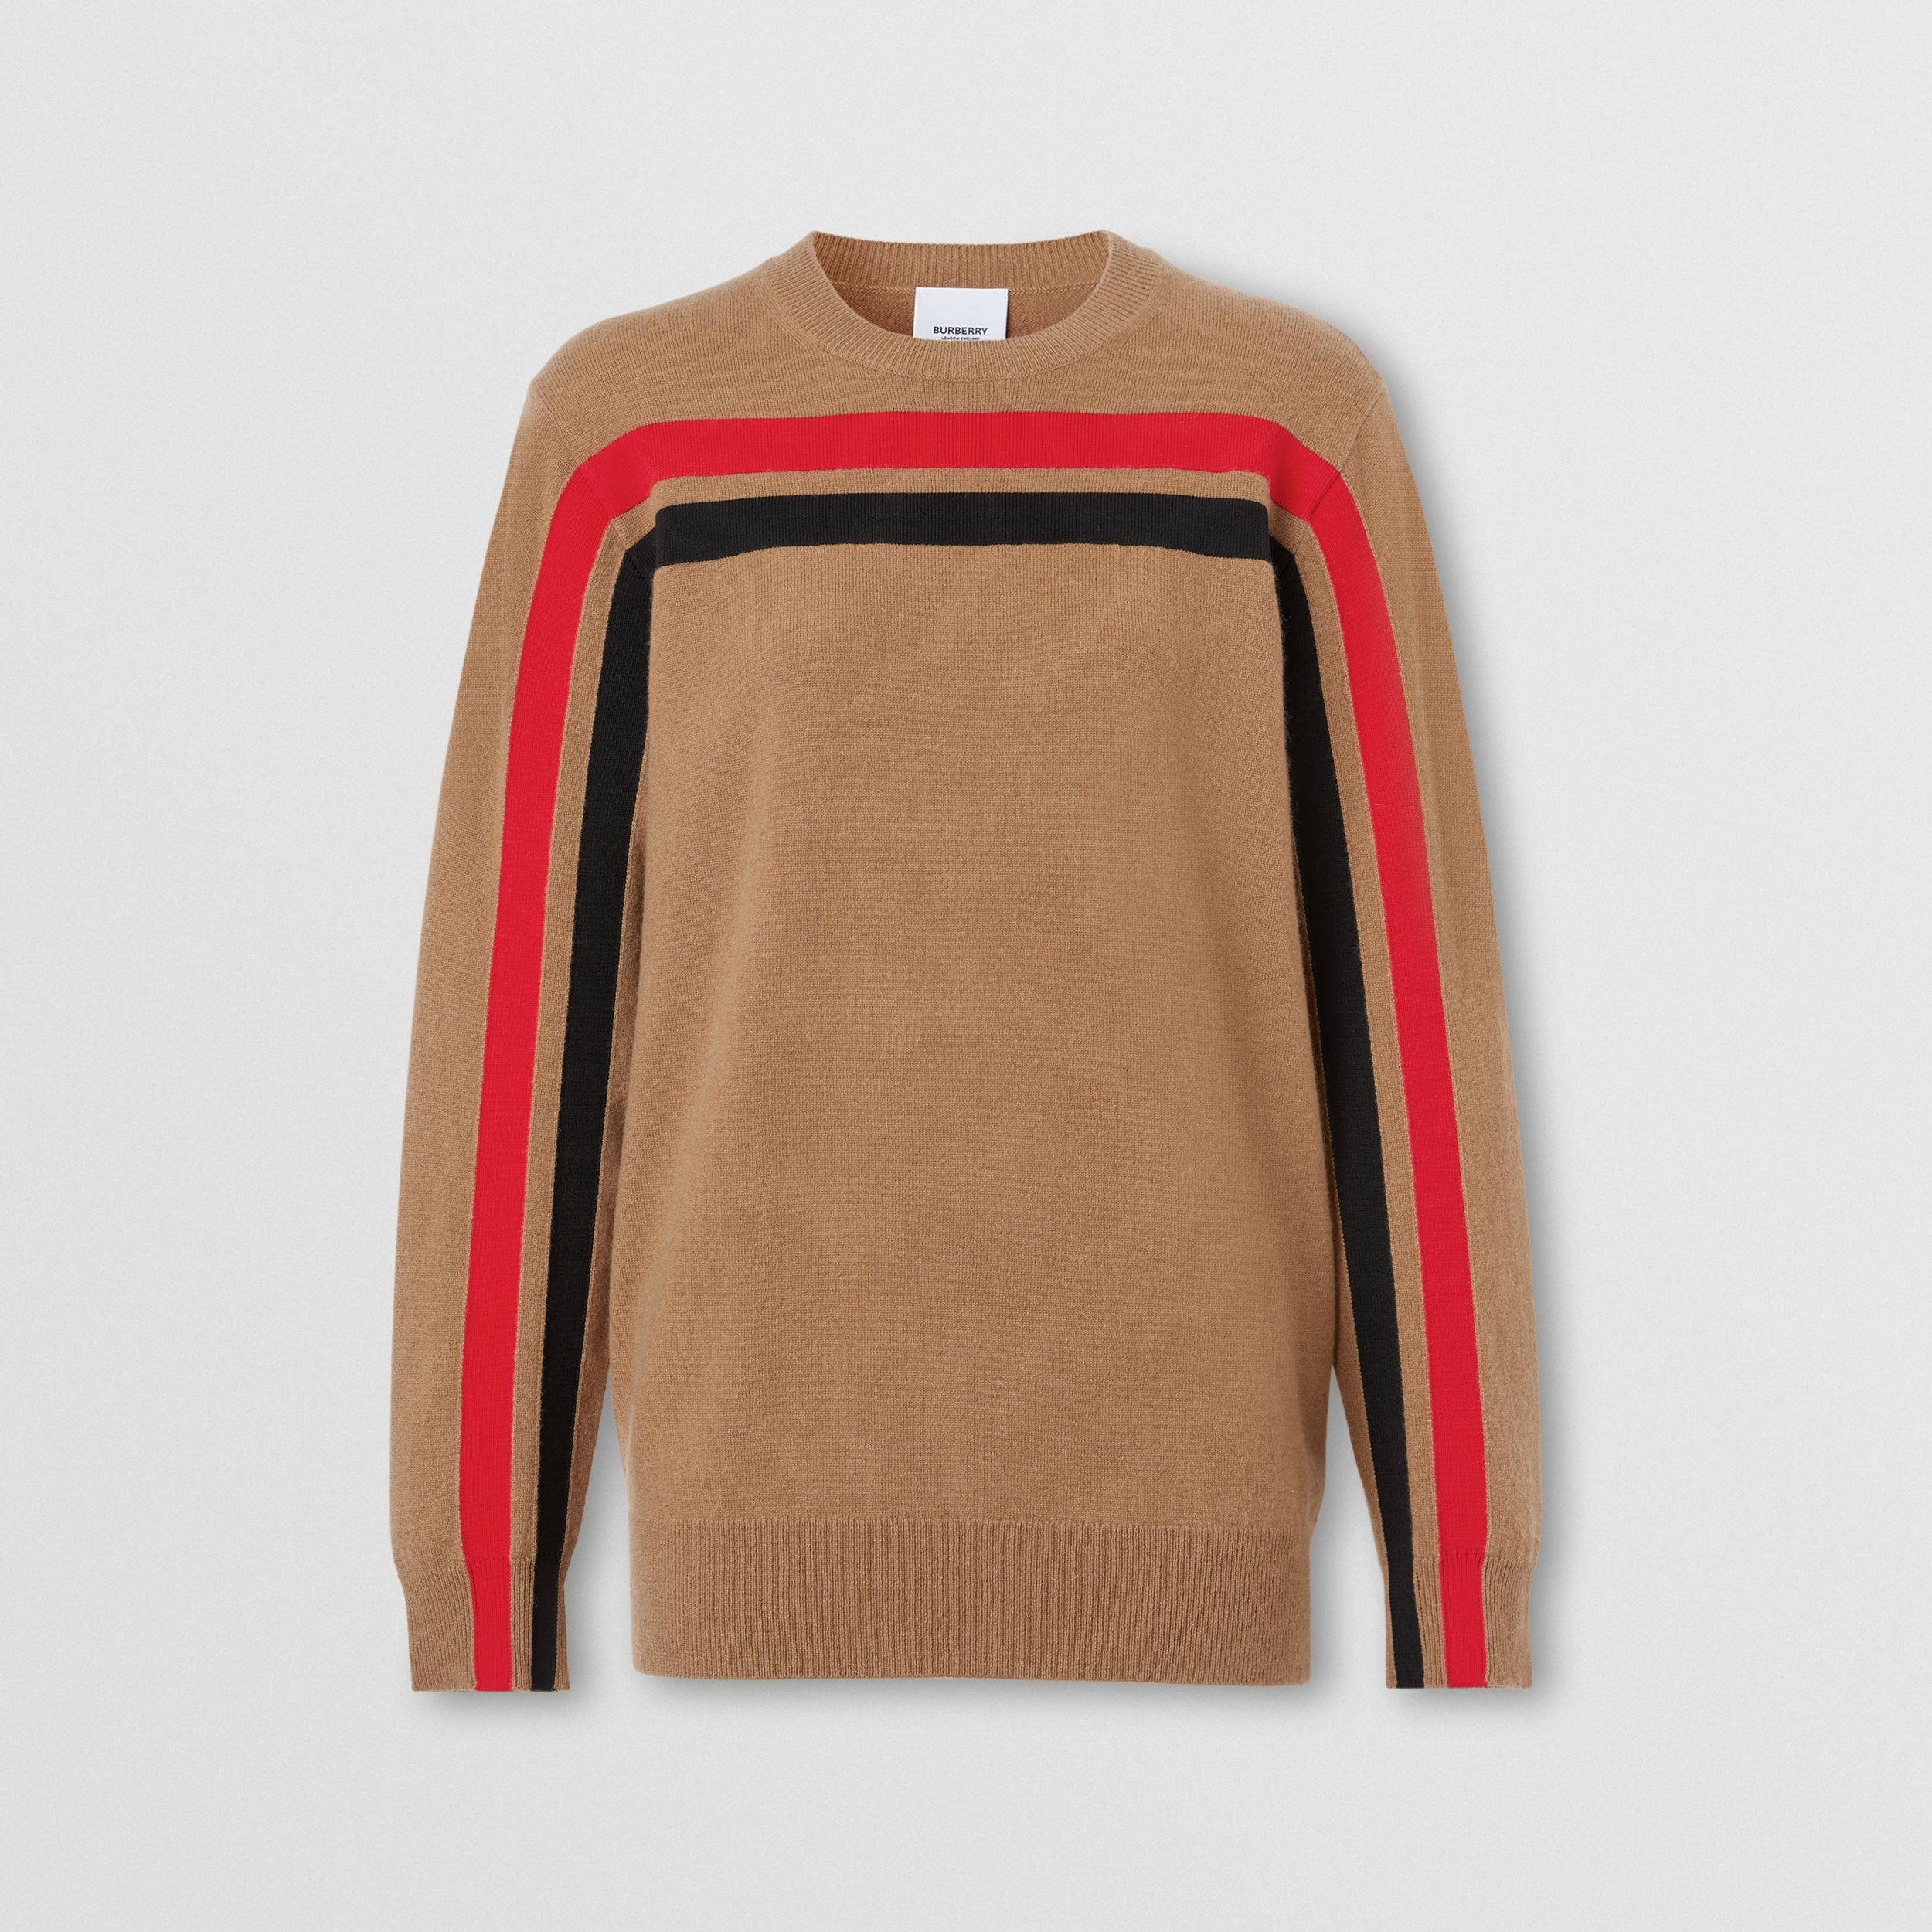 Stripe Detail Technical Cashmere Sweater in Beige - Women | Burberry - 4